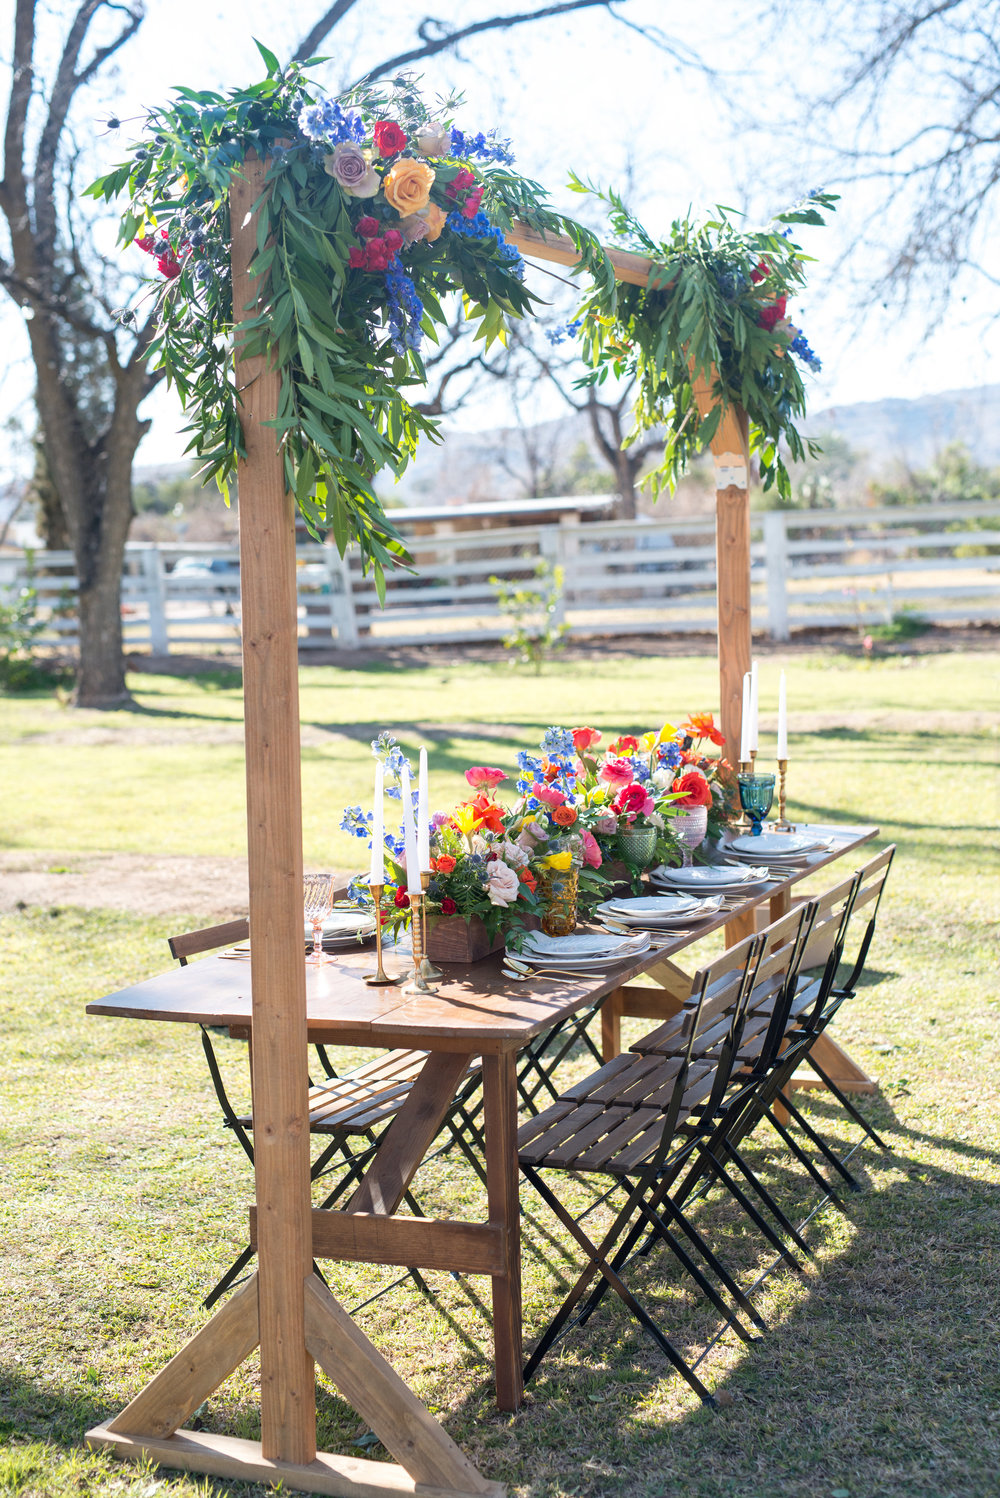 Farm Table with Floral Overhead and Colorful Centerpieces